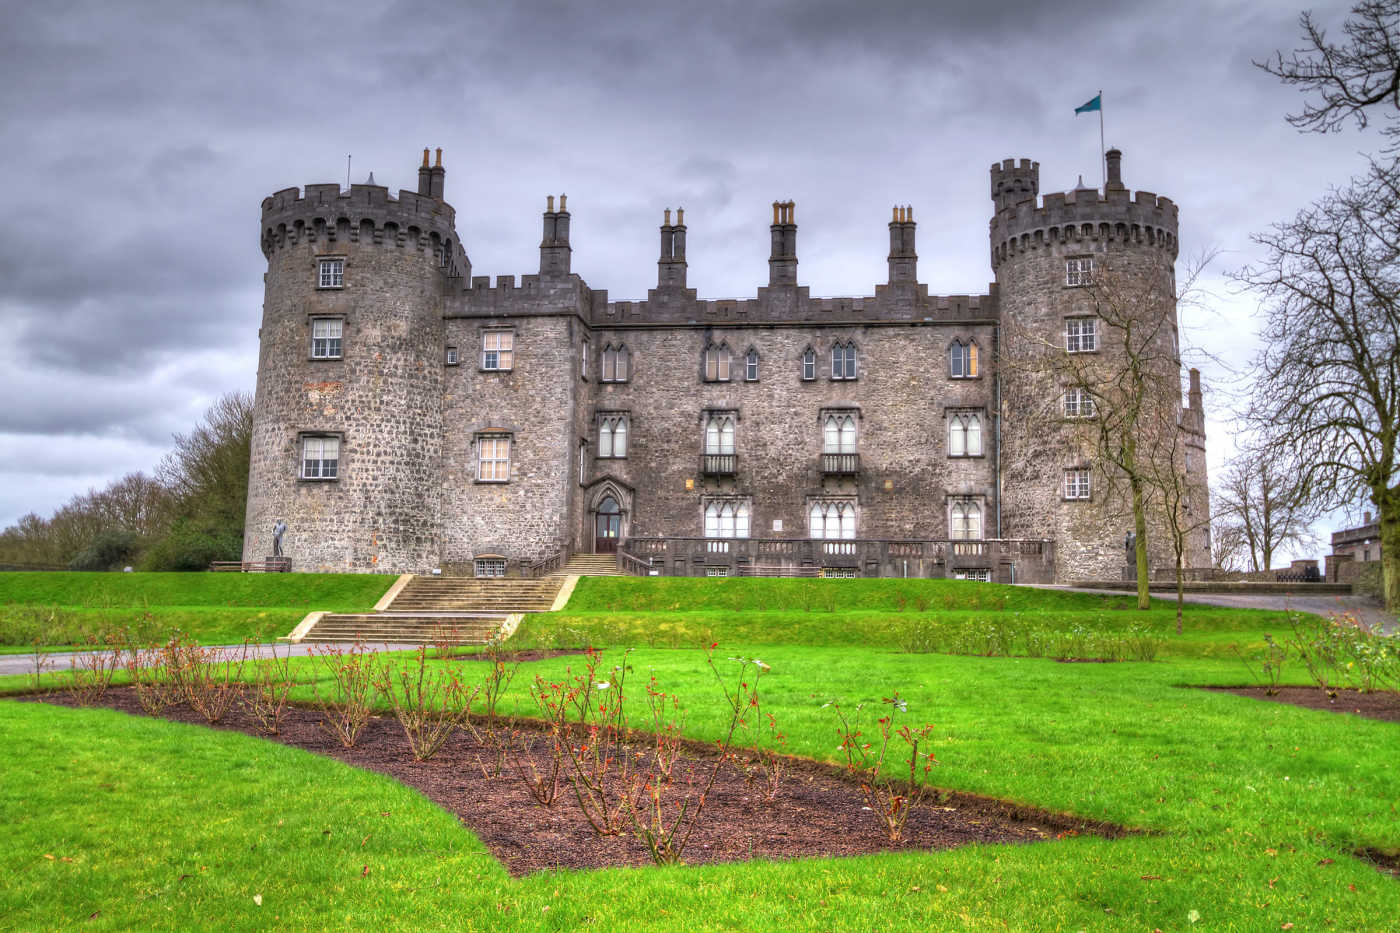 2019 Trips & Tours to Ireland | Vacation Packages w/ Airfare